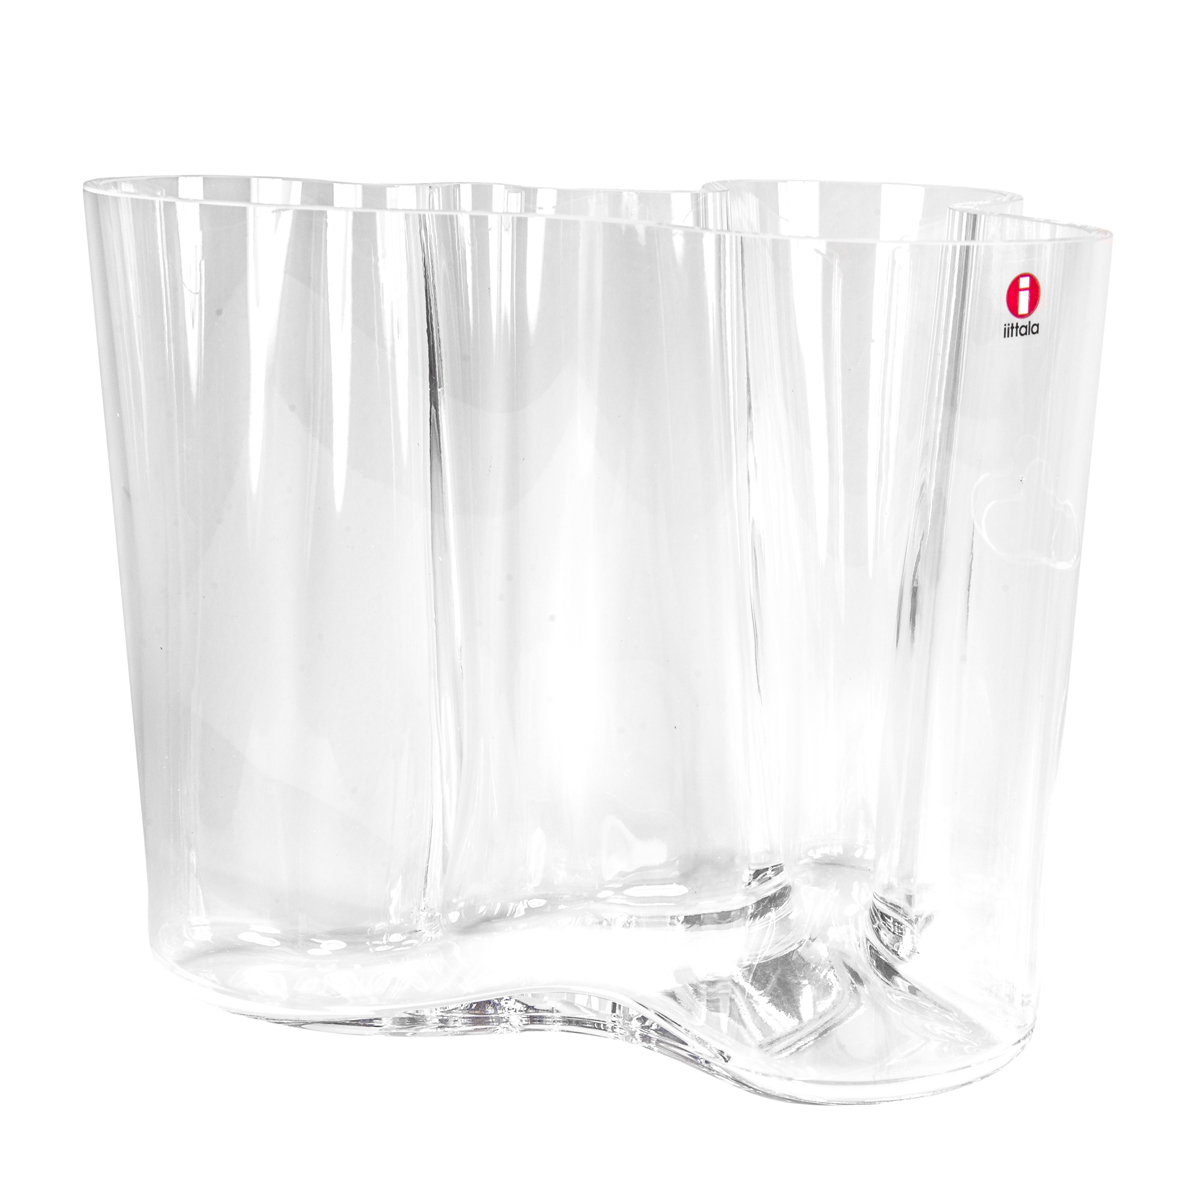 iittala aalto clear vase gift set iittala alvar aalto vases. Black Bedroom Furniture Sets. Home Design Ideas